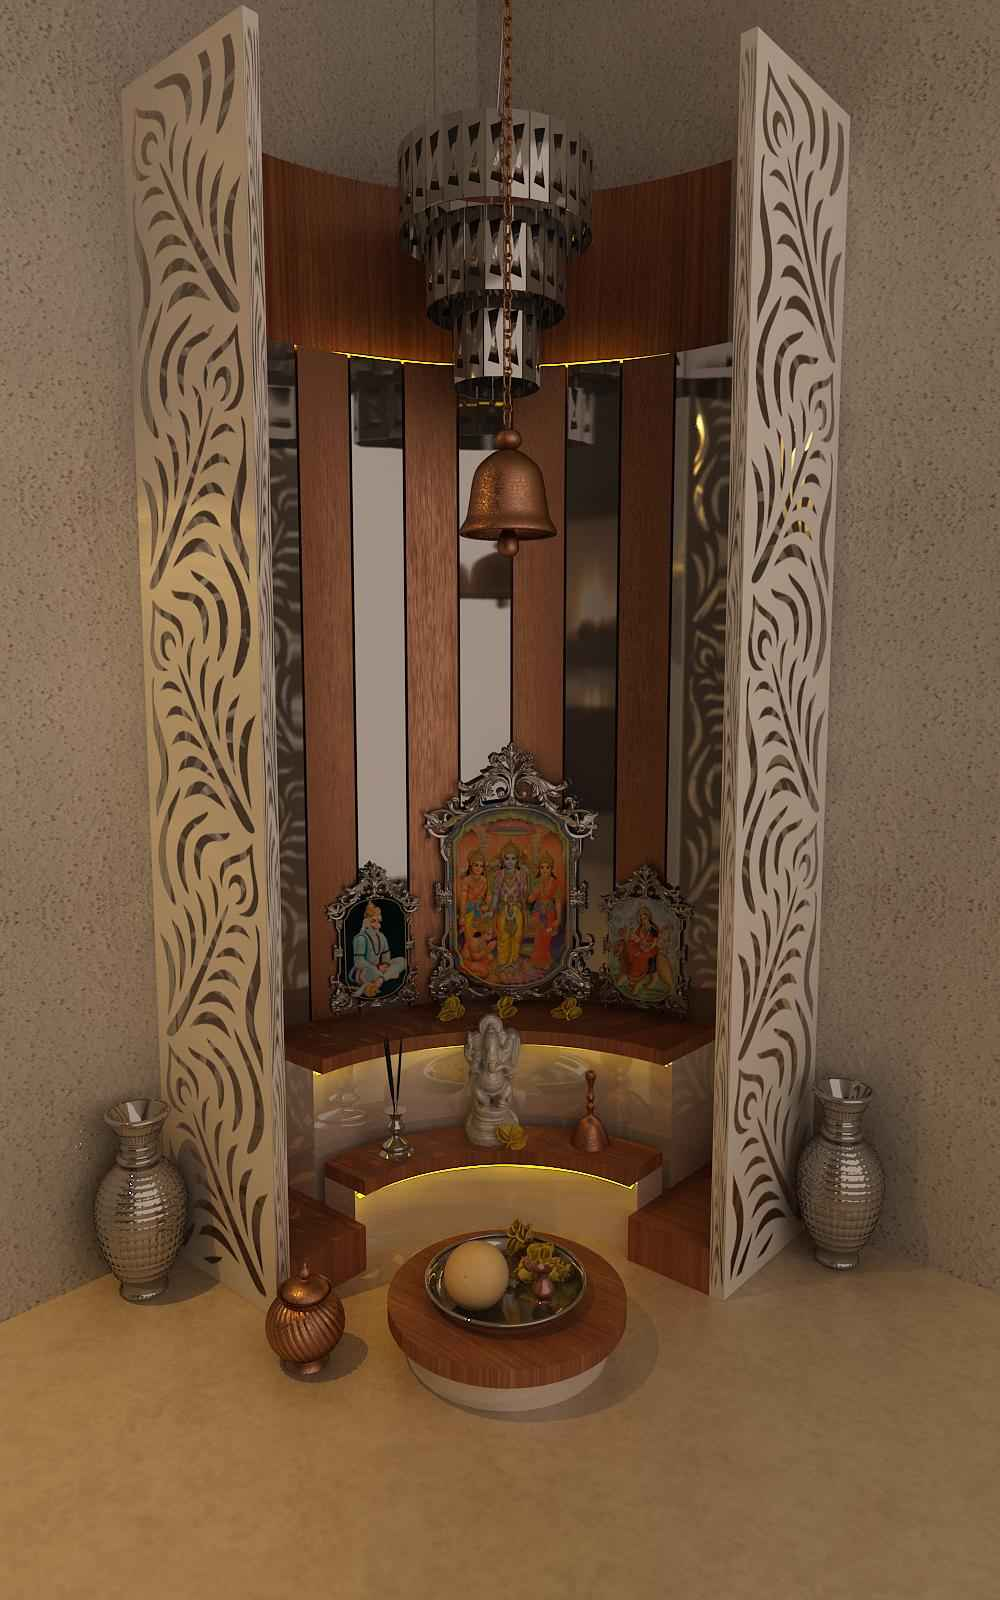 Pooja interior design inspiration for Home mandir designs marble